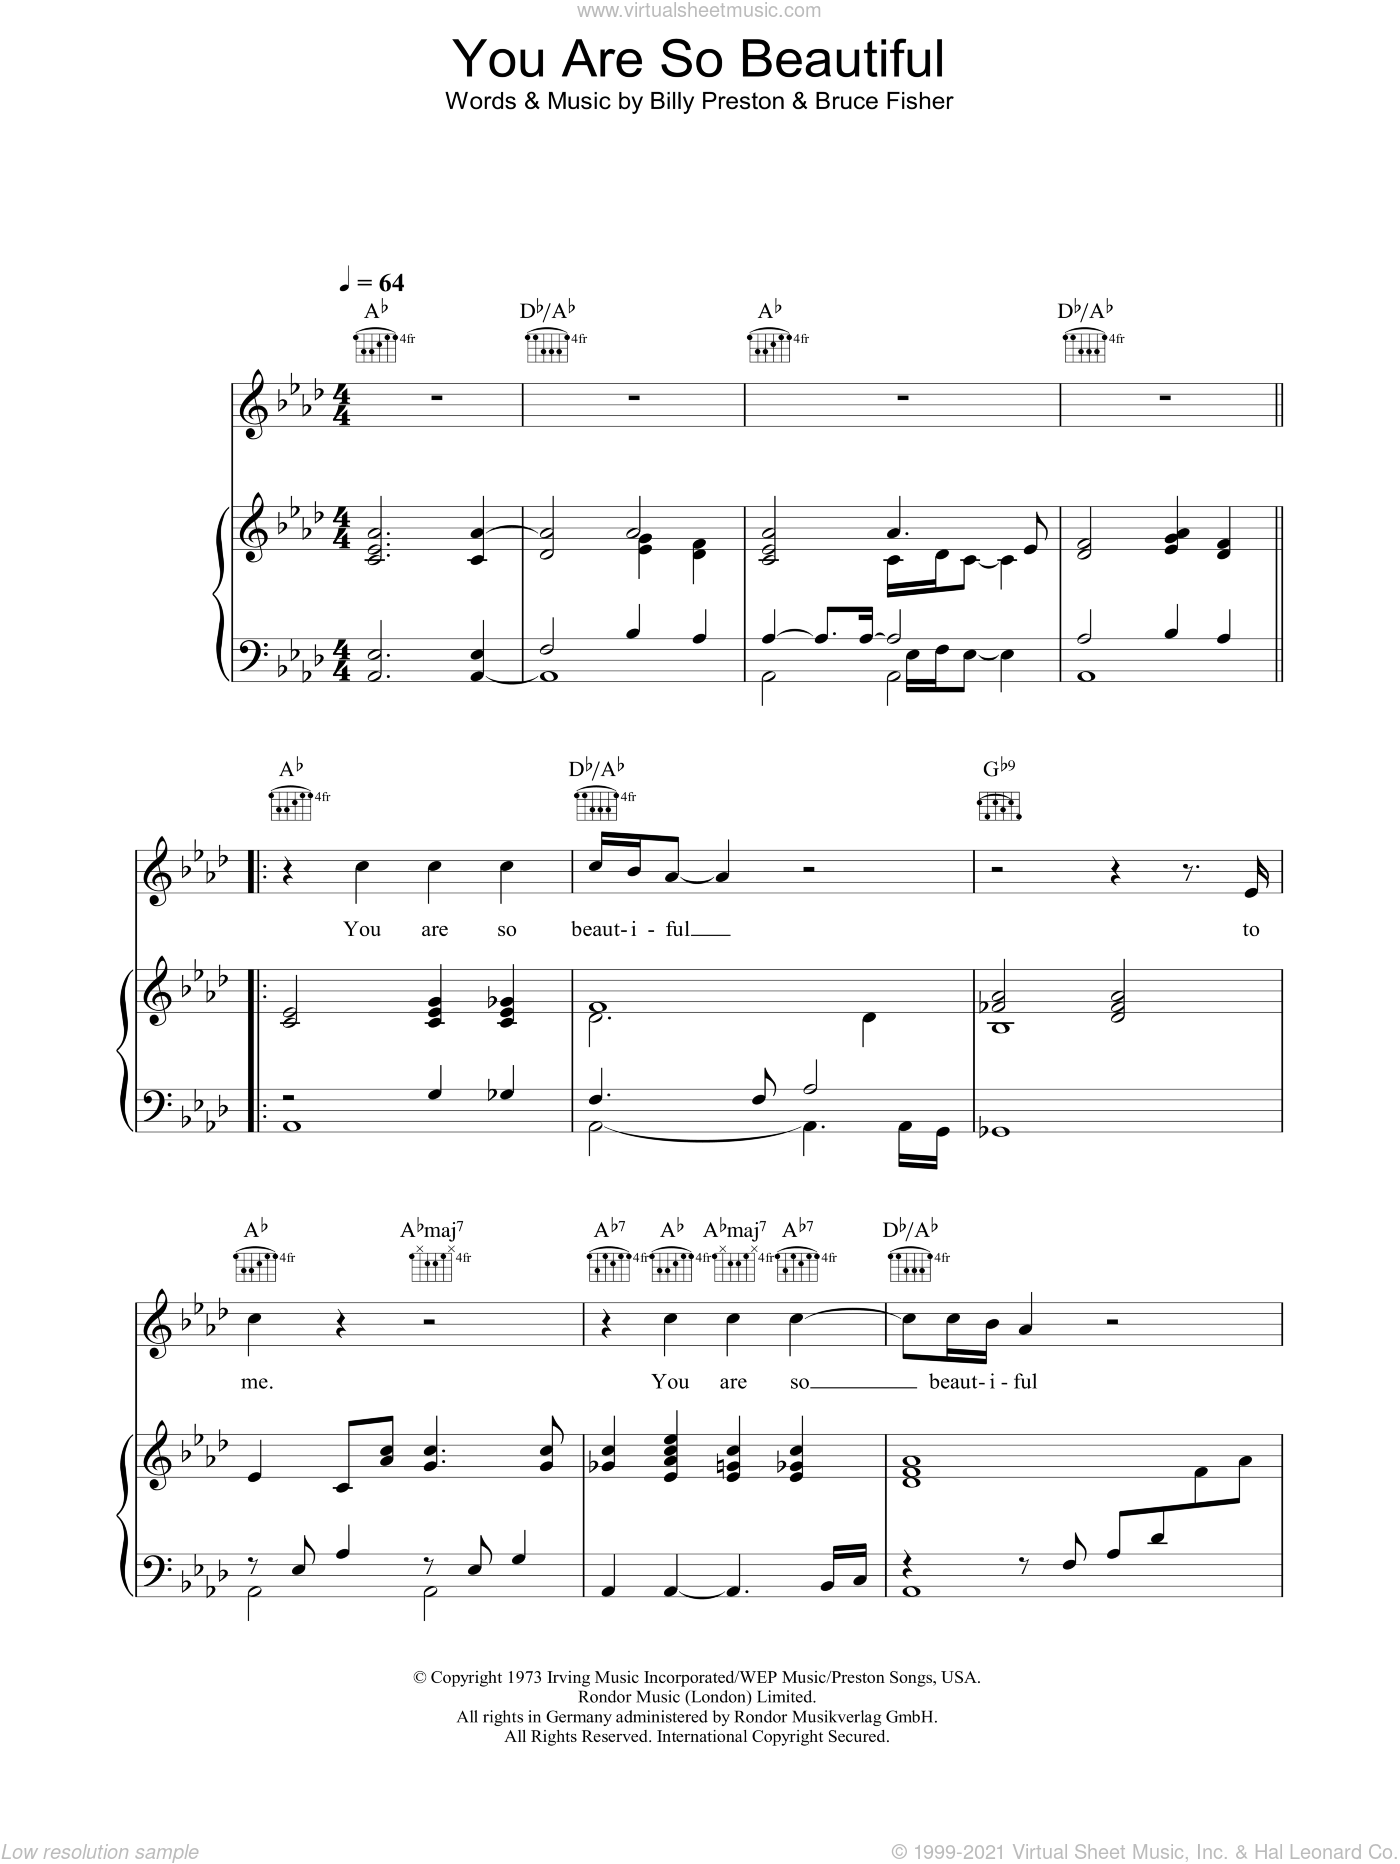 You Are So Beautiful sheet music for voice, piano or guitar by Billy Preston